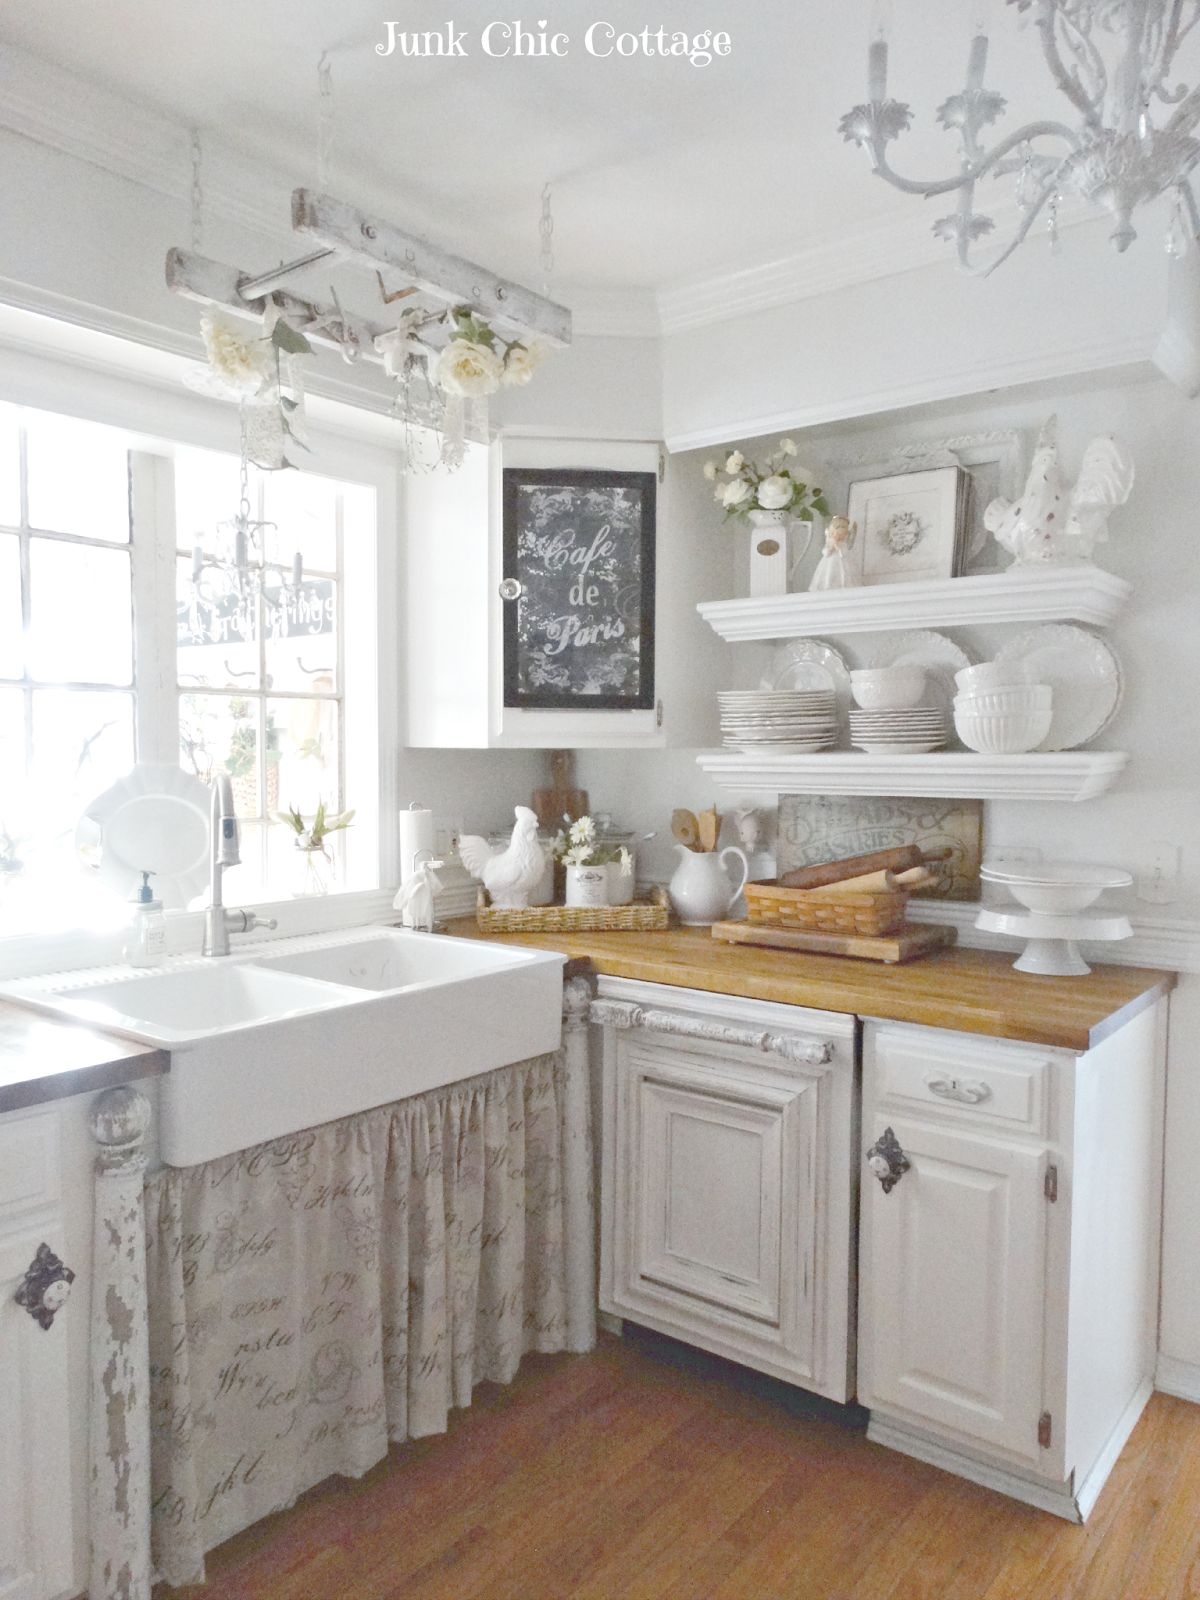 enchanting shabby chic kitchen design | How To Design A Shabby Chic Kitchen With A Subtle Modern Vibe